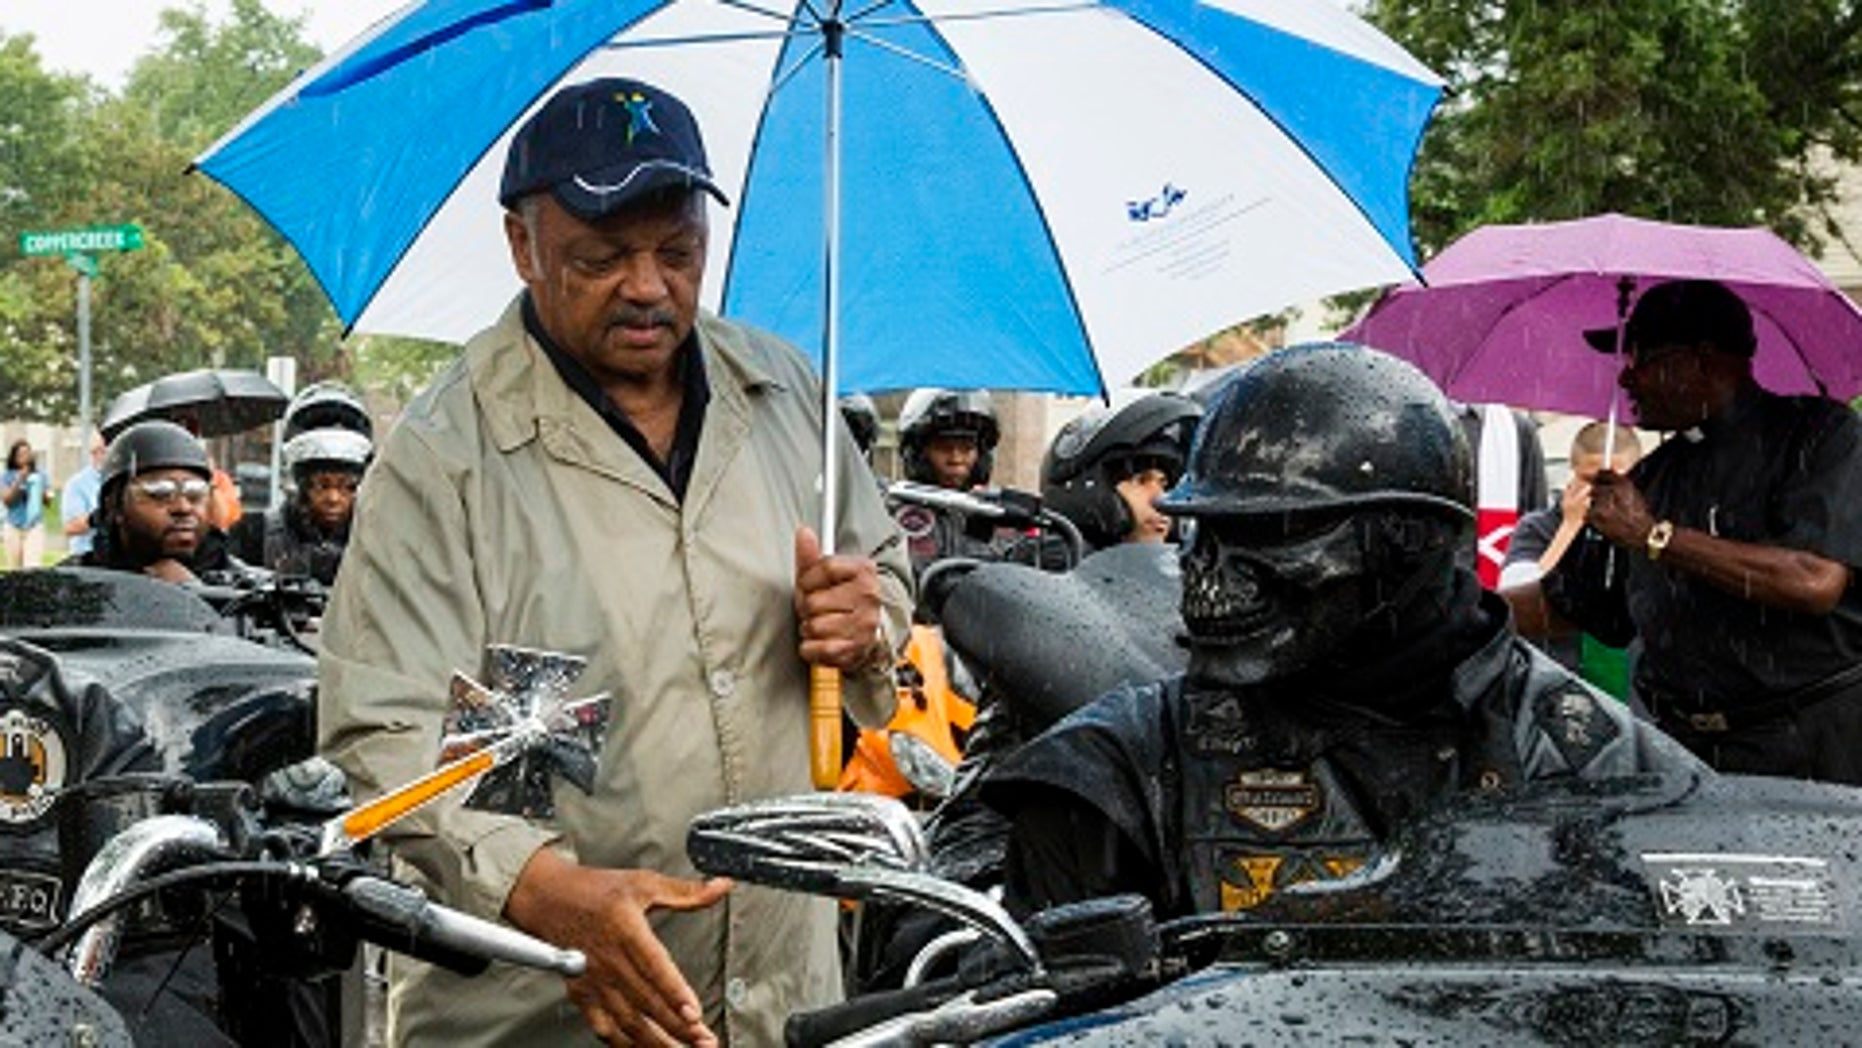 "Civil rights leader Jesse Jackson (C) greets members of the ""Outcast"" motorcycle club before a vigil in the neighborhood where teenager Michael Brown was shot, in Ferguson, Missouri, August 16, 2014. Tensions had temporarily cooled on Thursday night but by Friday evening, protesters were again swarming through a residential and retail district in the small town outside St. Louis that has become the site of repeated clashes between protestors and police forces. The unrest erupted after Ferguson police officer Darren Wilson, 28, shot and killed Brown shortly after noon last Saturday as Brown and a friend walked down a street that runs through an apartment complex where Brown's grandmother lives. REUTERS/Lucas Jackson (UNITED STATES - Tags: CIVIL UNREST CRIME LAW TPX IMAGES OF THE DAY) - RTR42O0M"